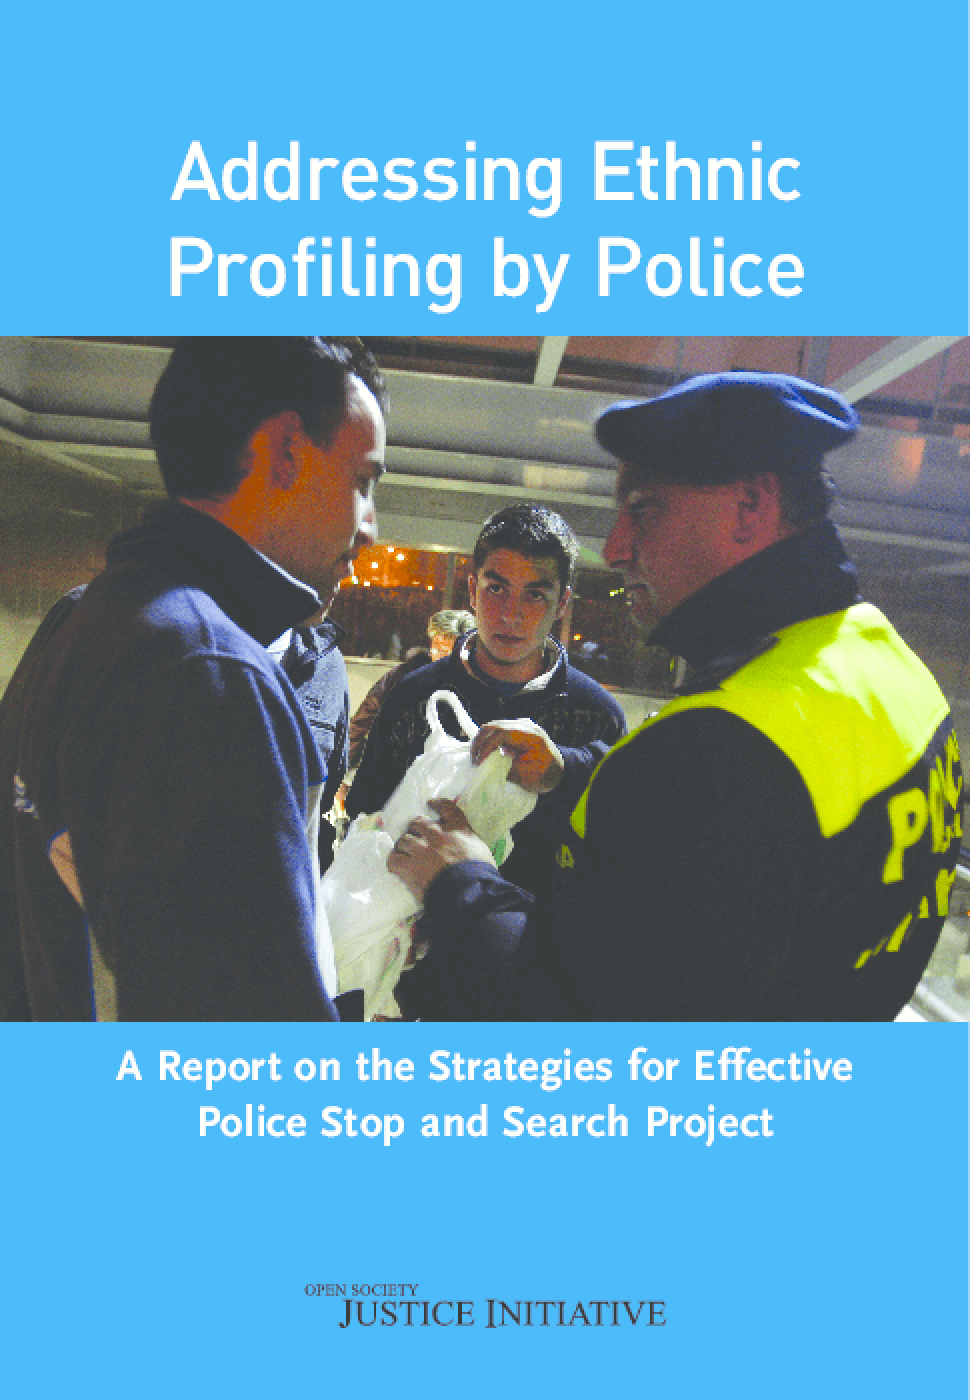 Addressing Ethnic Profiling by Police: A Report on the Strategies for Effective Police Stop and Search Project